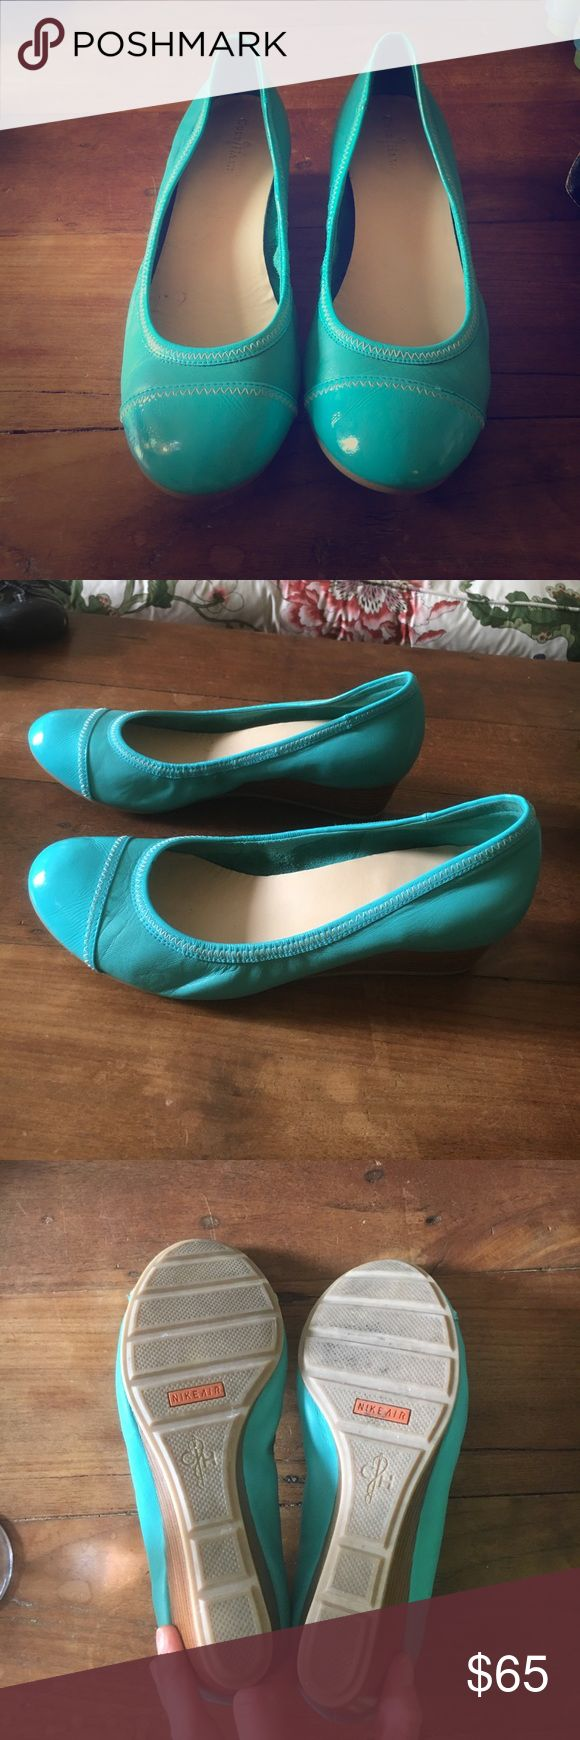 Cole Hahn Nike sole turquoise wedges Cole Hahn Nike sole turquoise wedges- size 9. Super comfortable with lots of support. Worn once Cole Haan Shoes Wedges